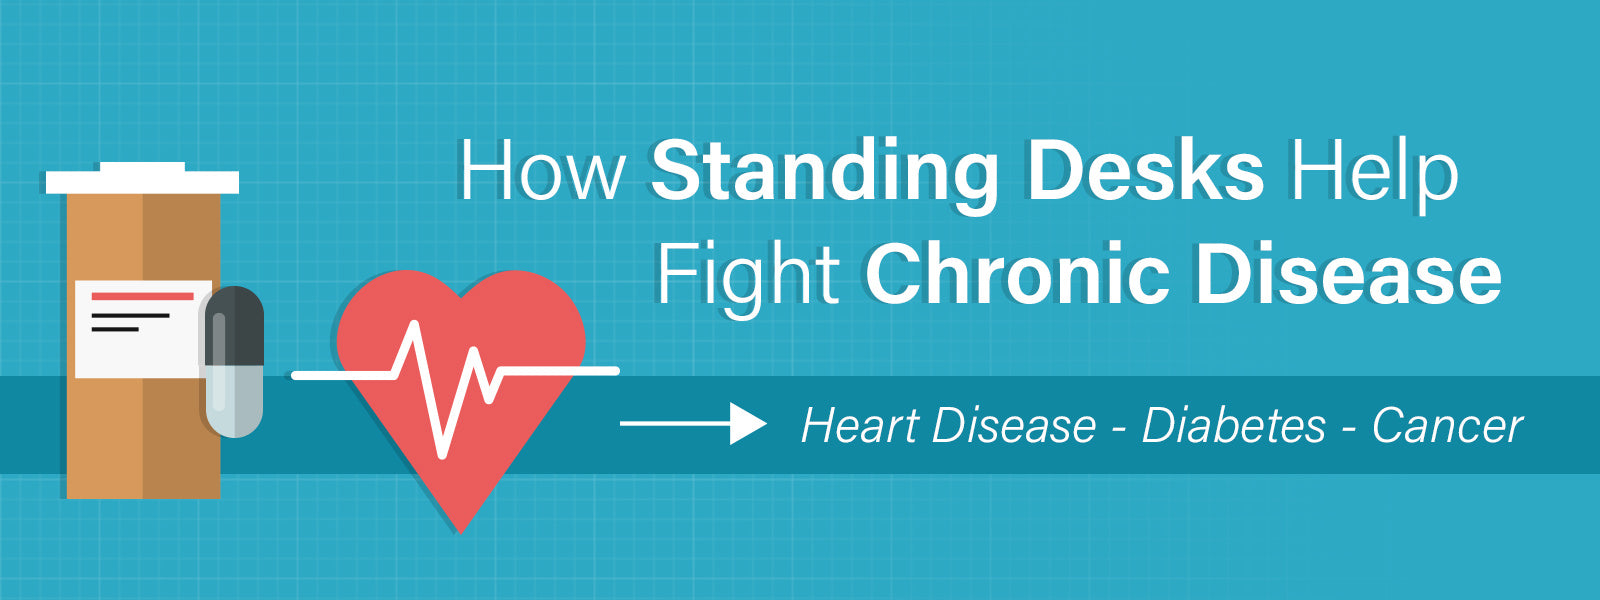 Standing Desks and Chronic Disease